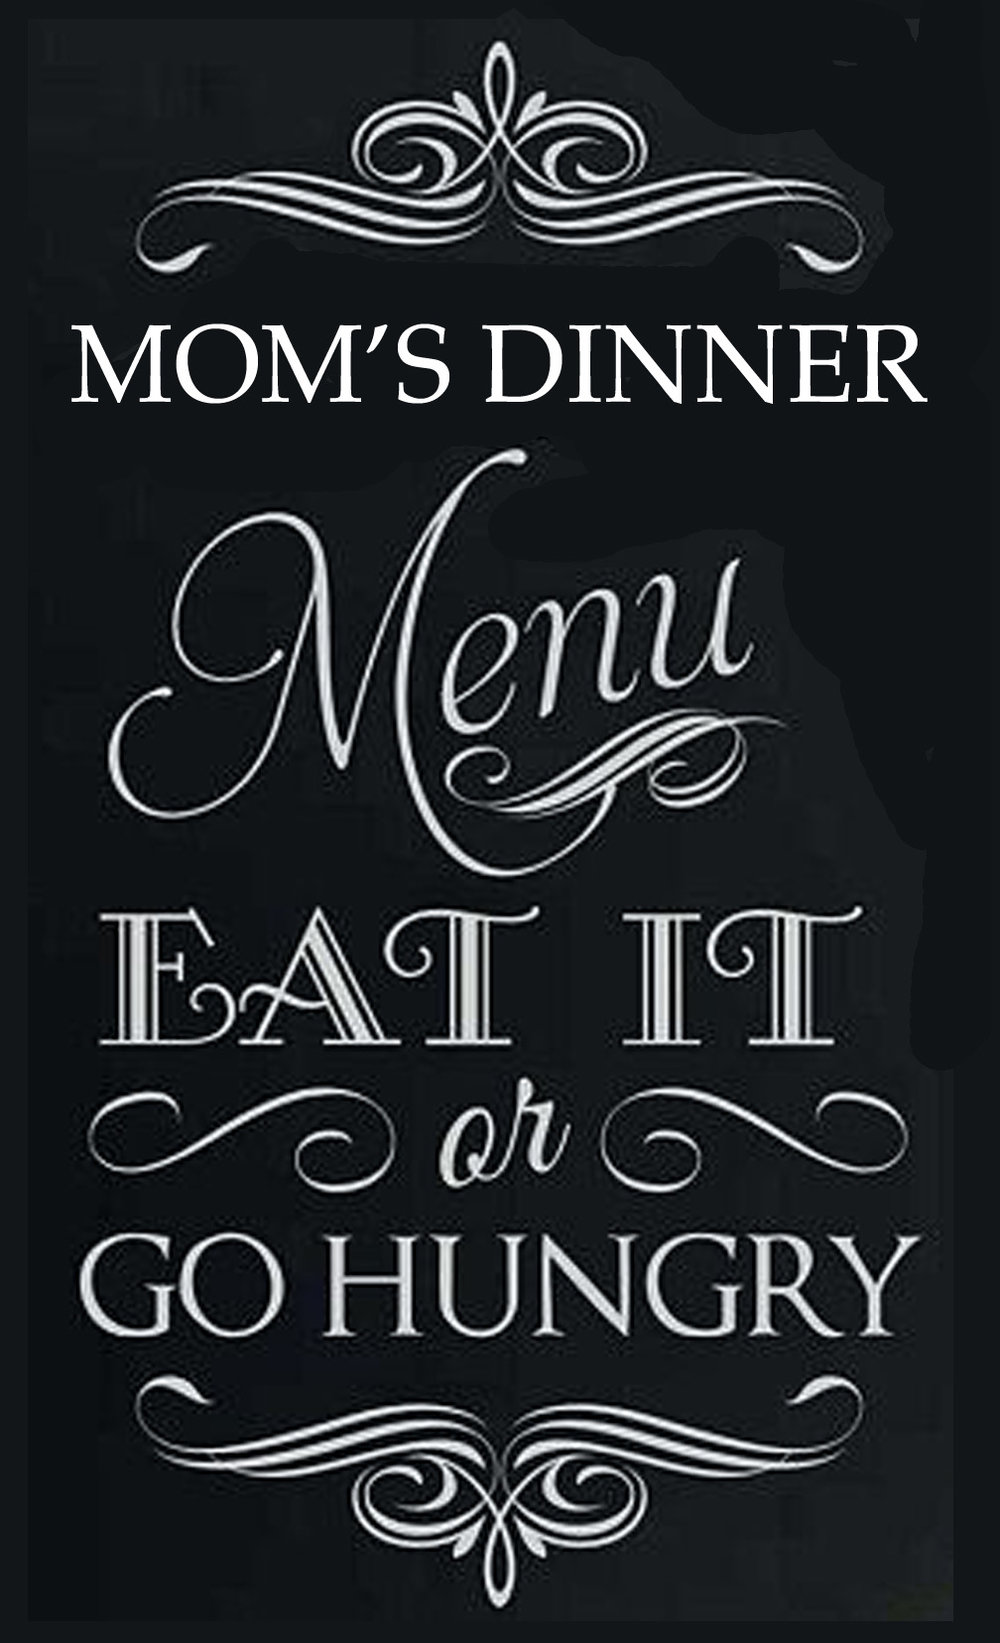 Copy of Culinary // Eat It or Go Hunger // 14x23 // $65